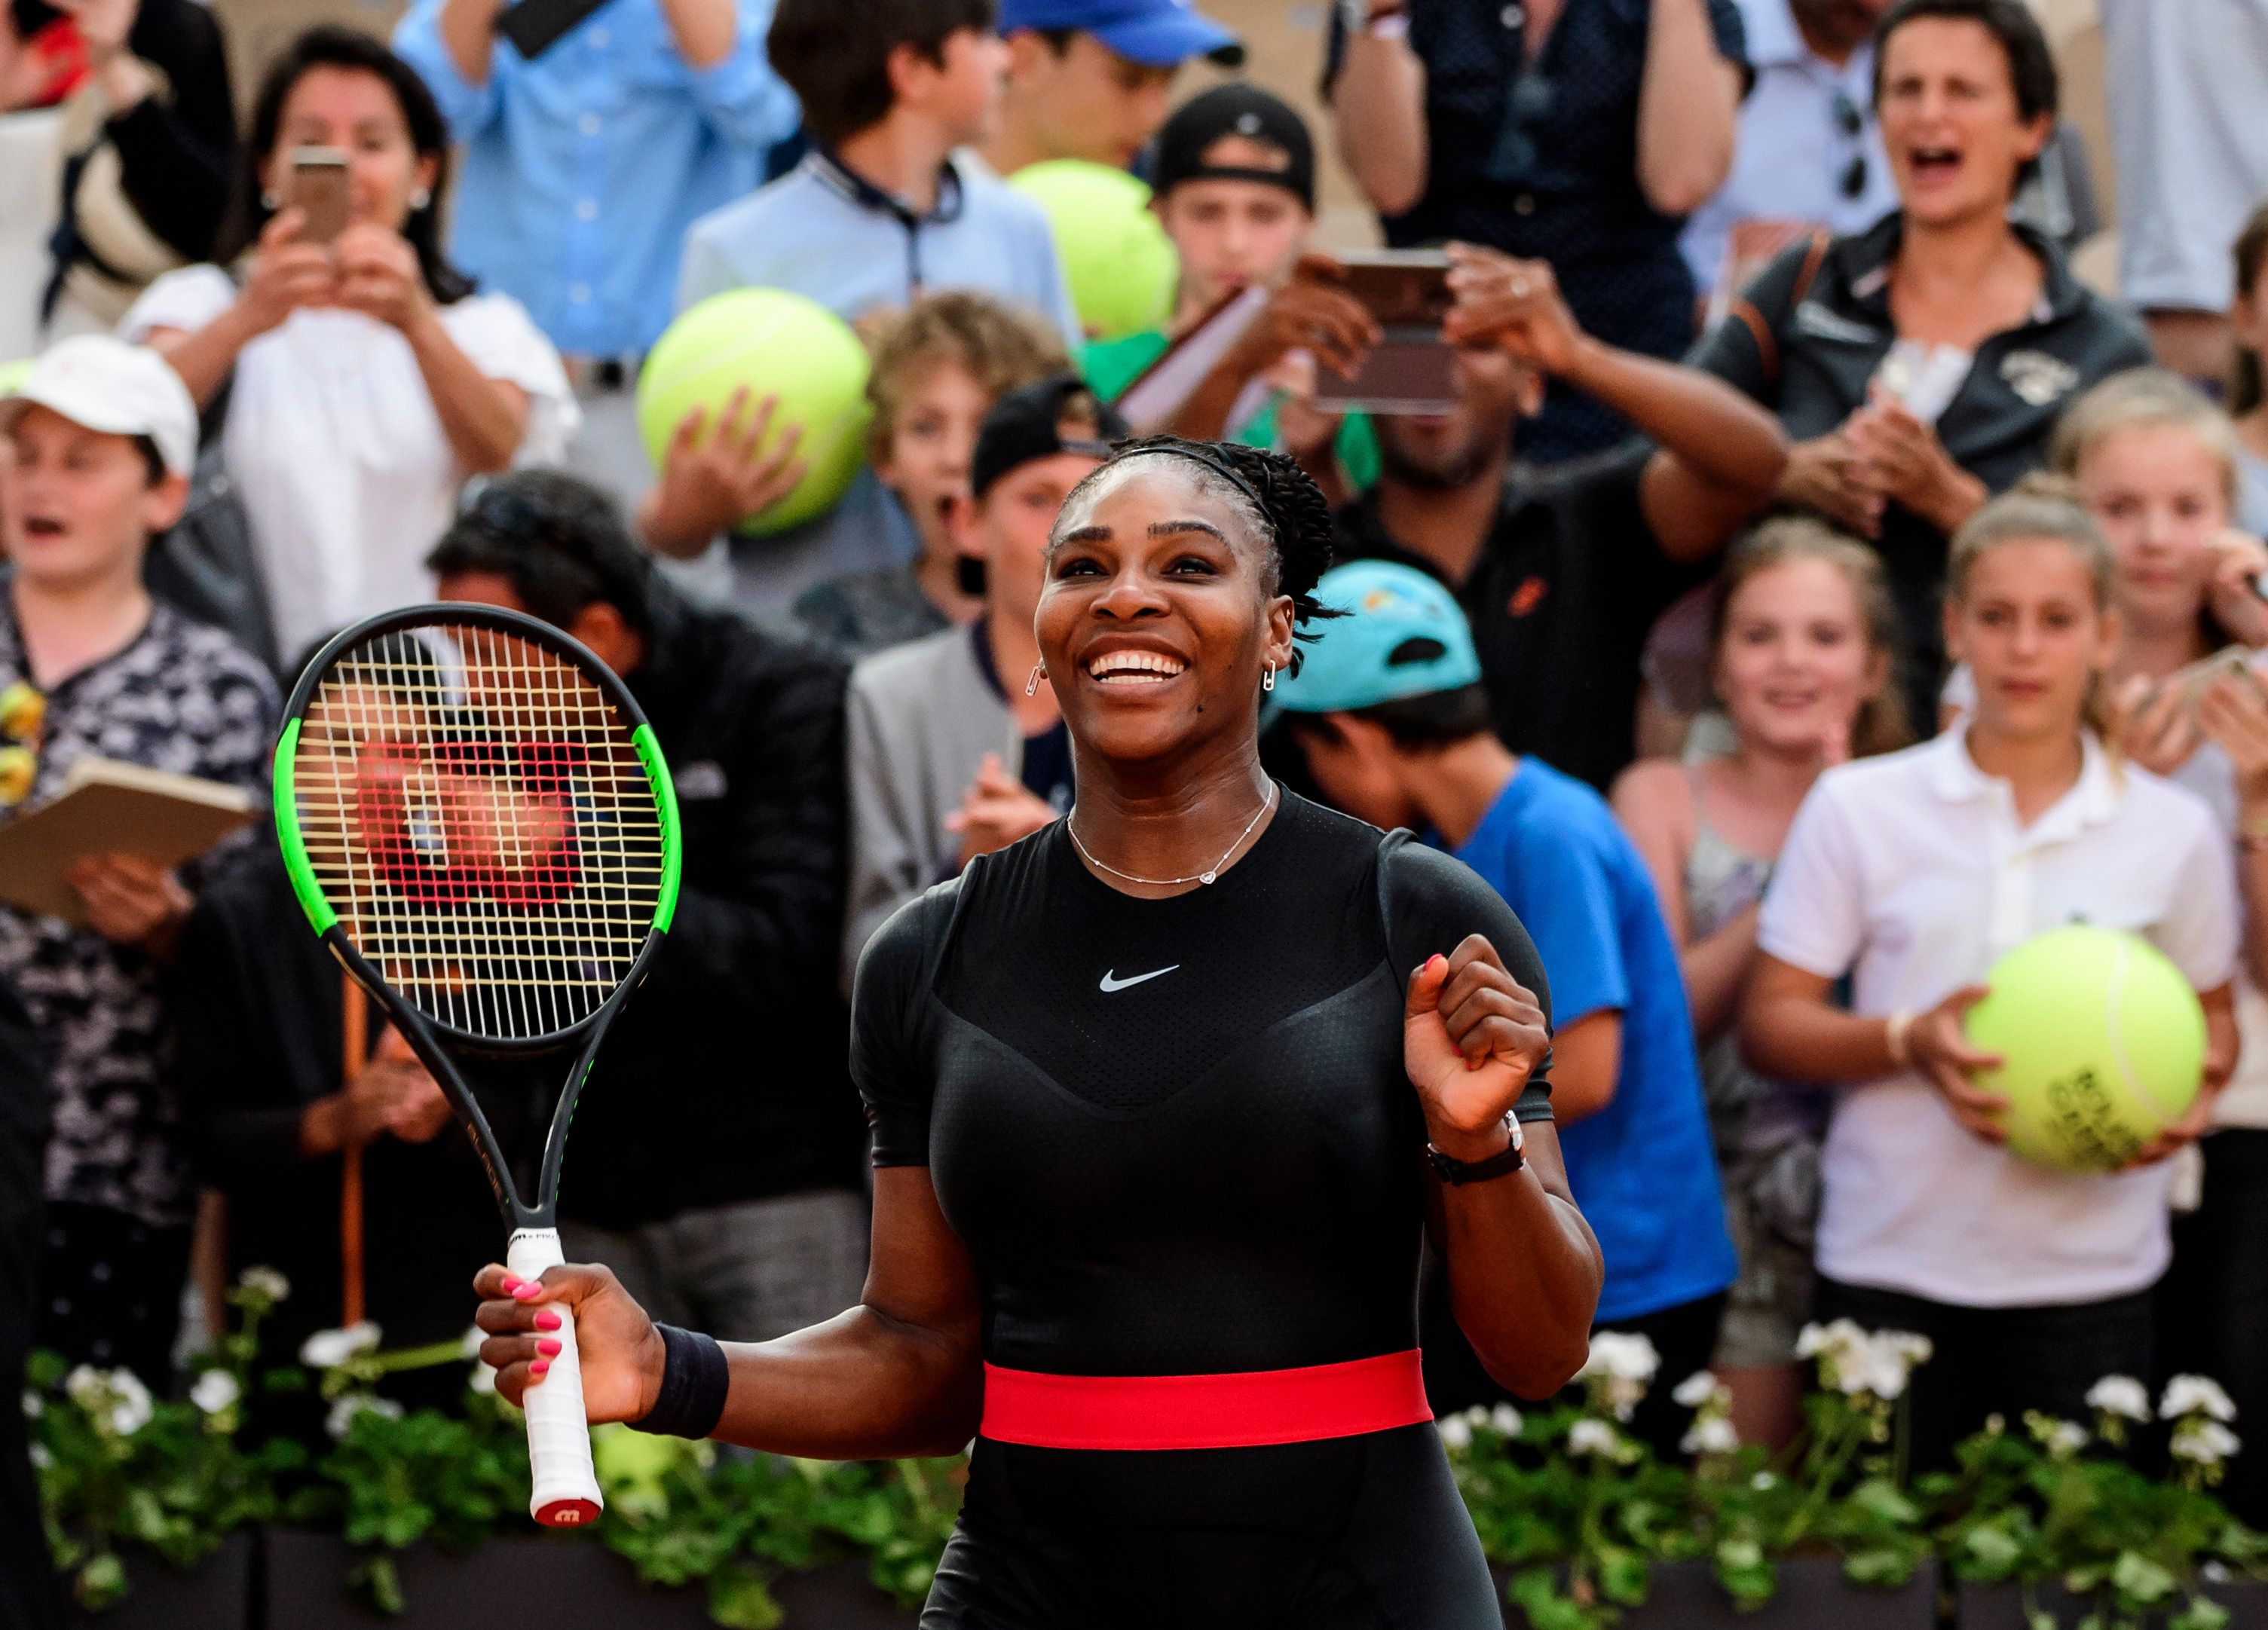 PARIS, FRANCE - JUNE 02: Serena Williams of the United States celebrates after beating Julia Goerges of Germany 6-3 6-4 in the third round of the women's singles during the French Open at Roland Garros on June 2, 2018 in Paris, France. (Photo by Mike Frey/Getty Images)